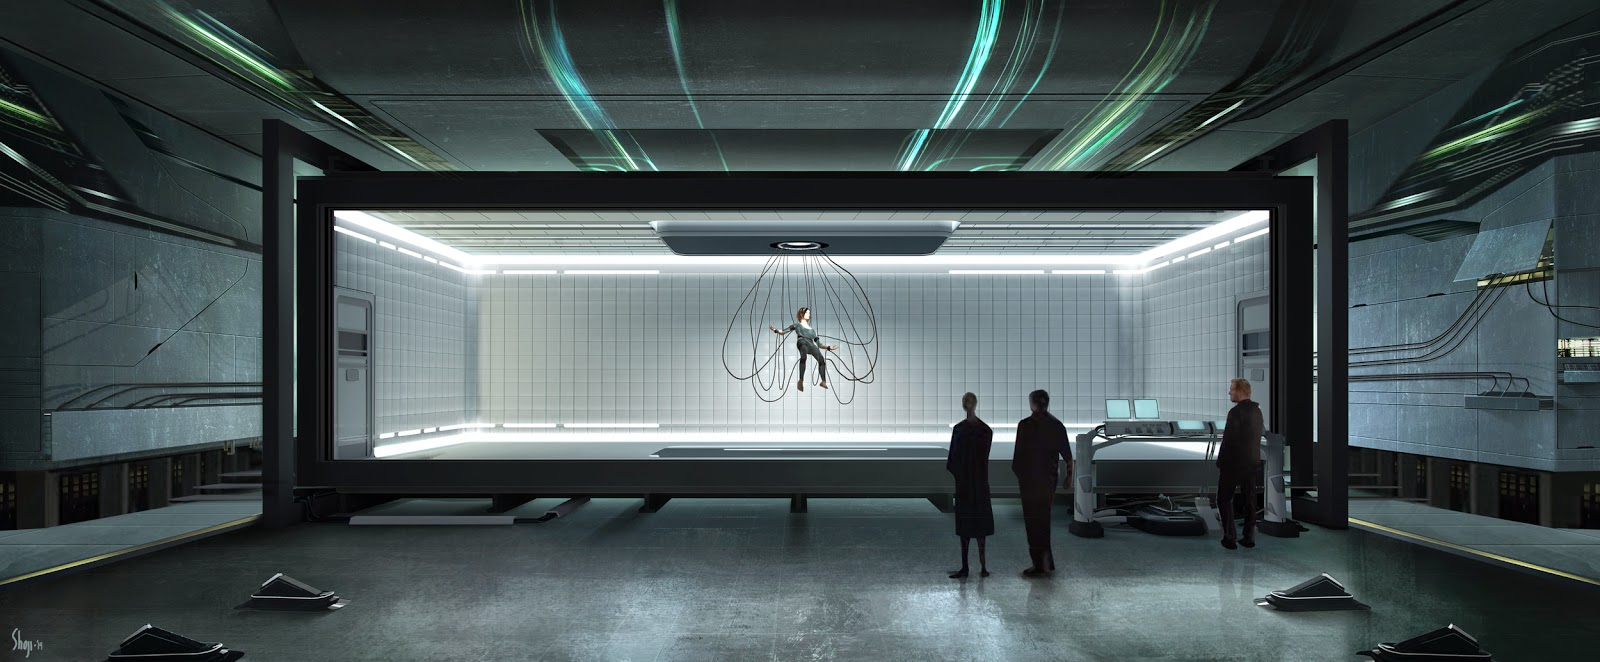 hauntingly beautiful insurgent concept art by craig shoji